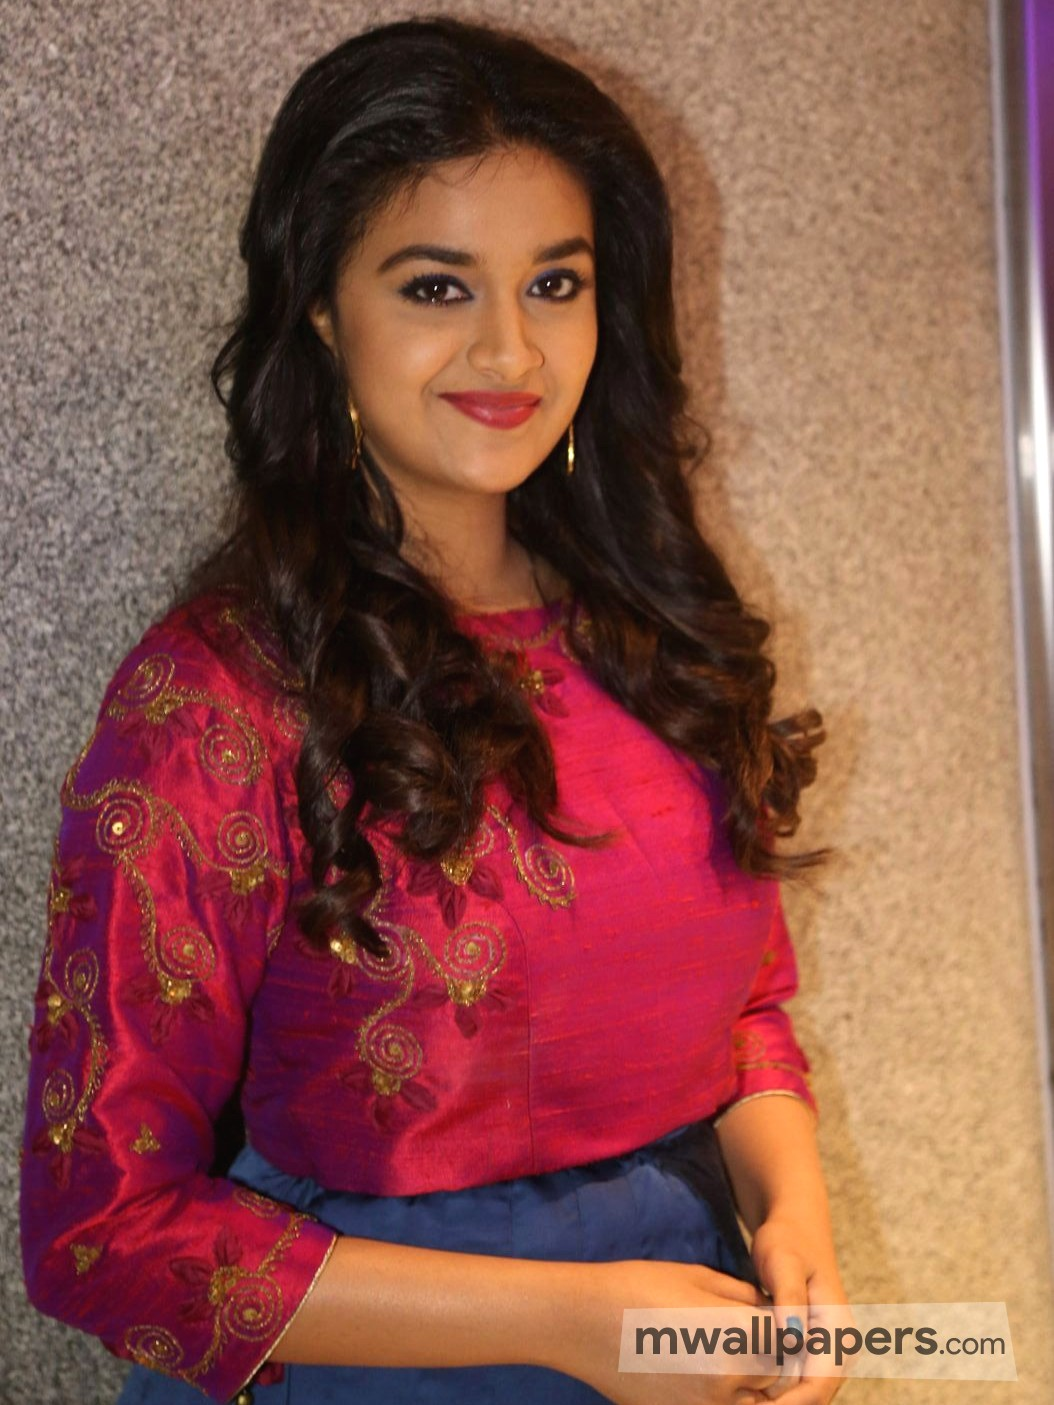 Keerthy Suresh Beautiful HD Images (1174) - Keerthy Suresh